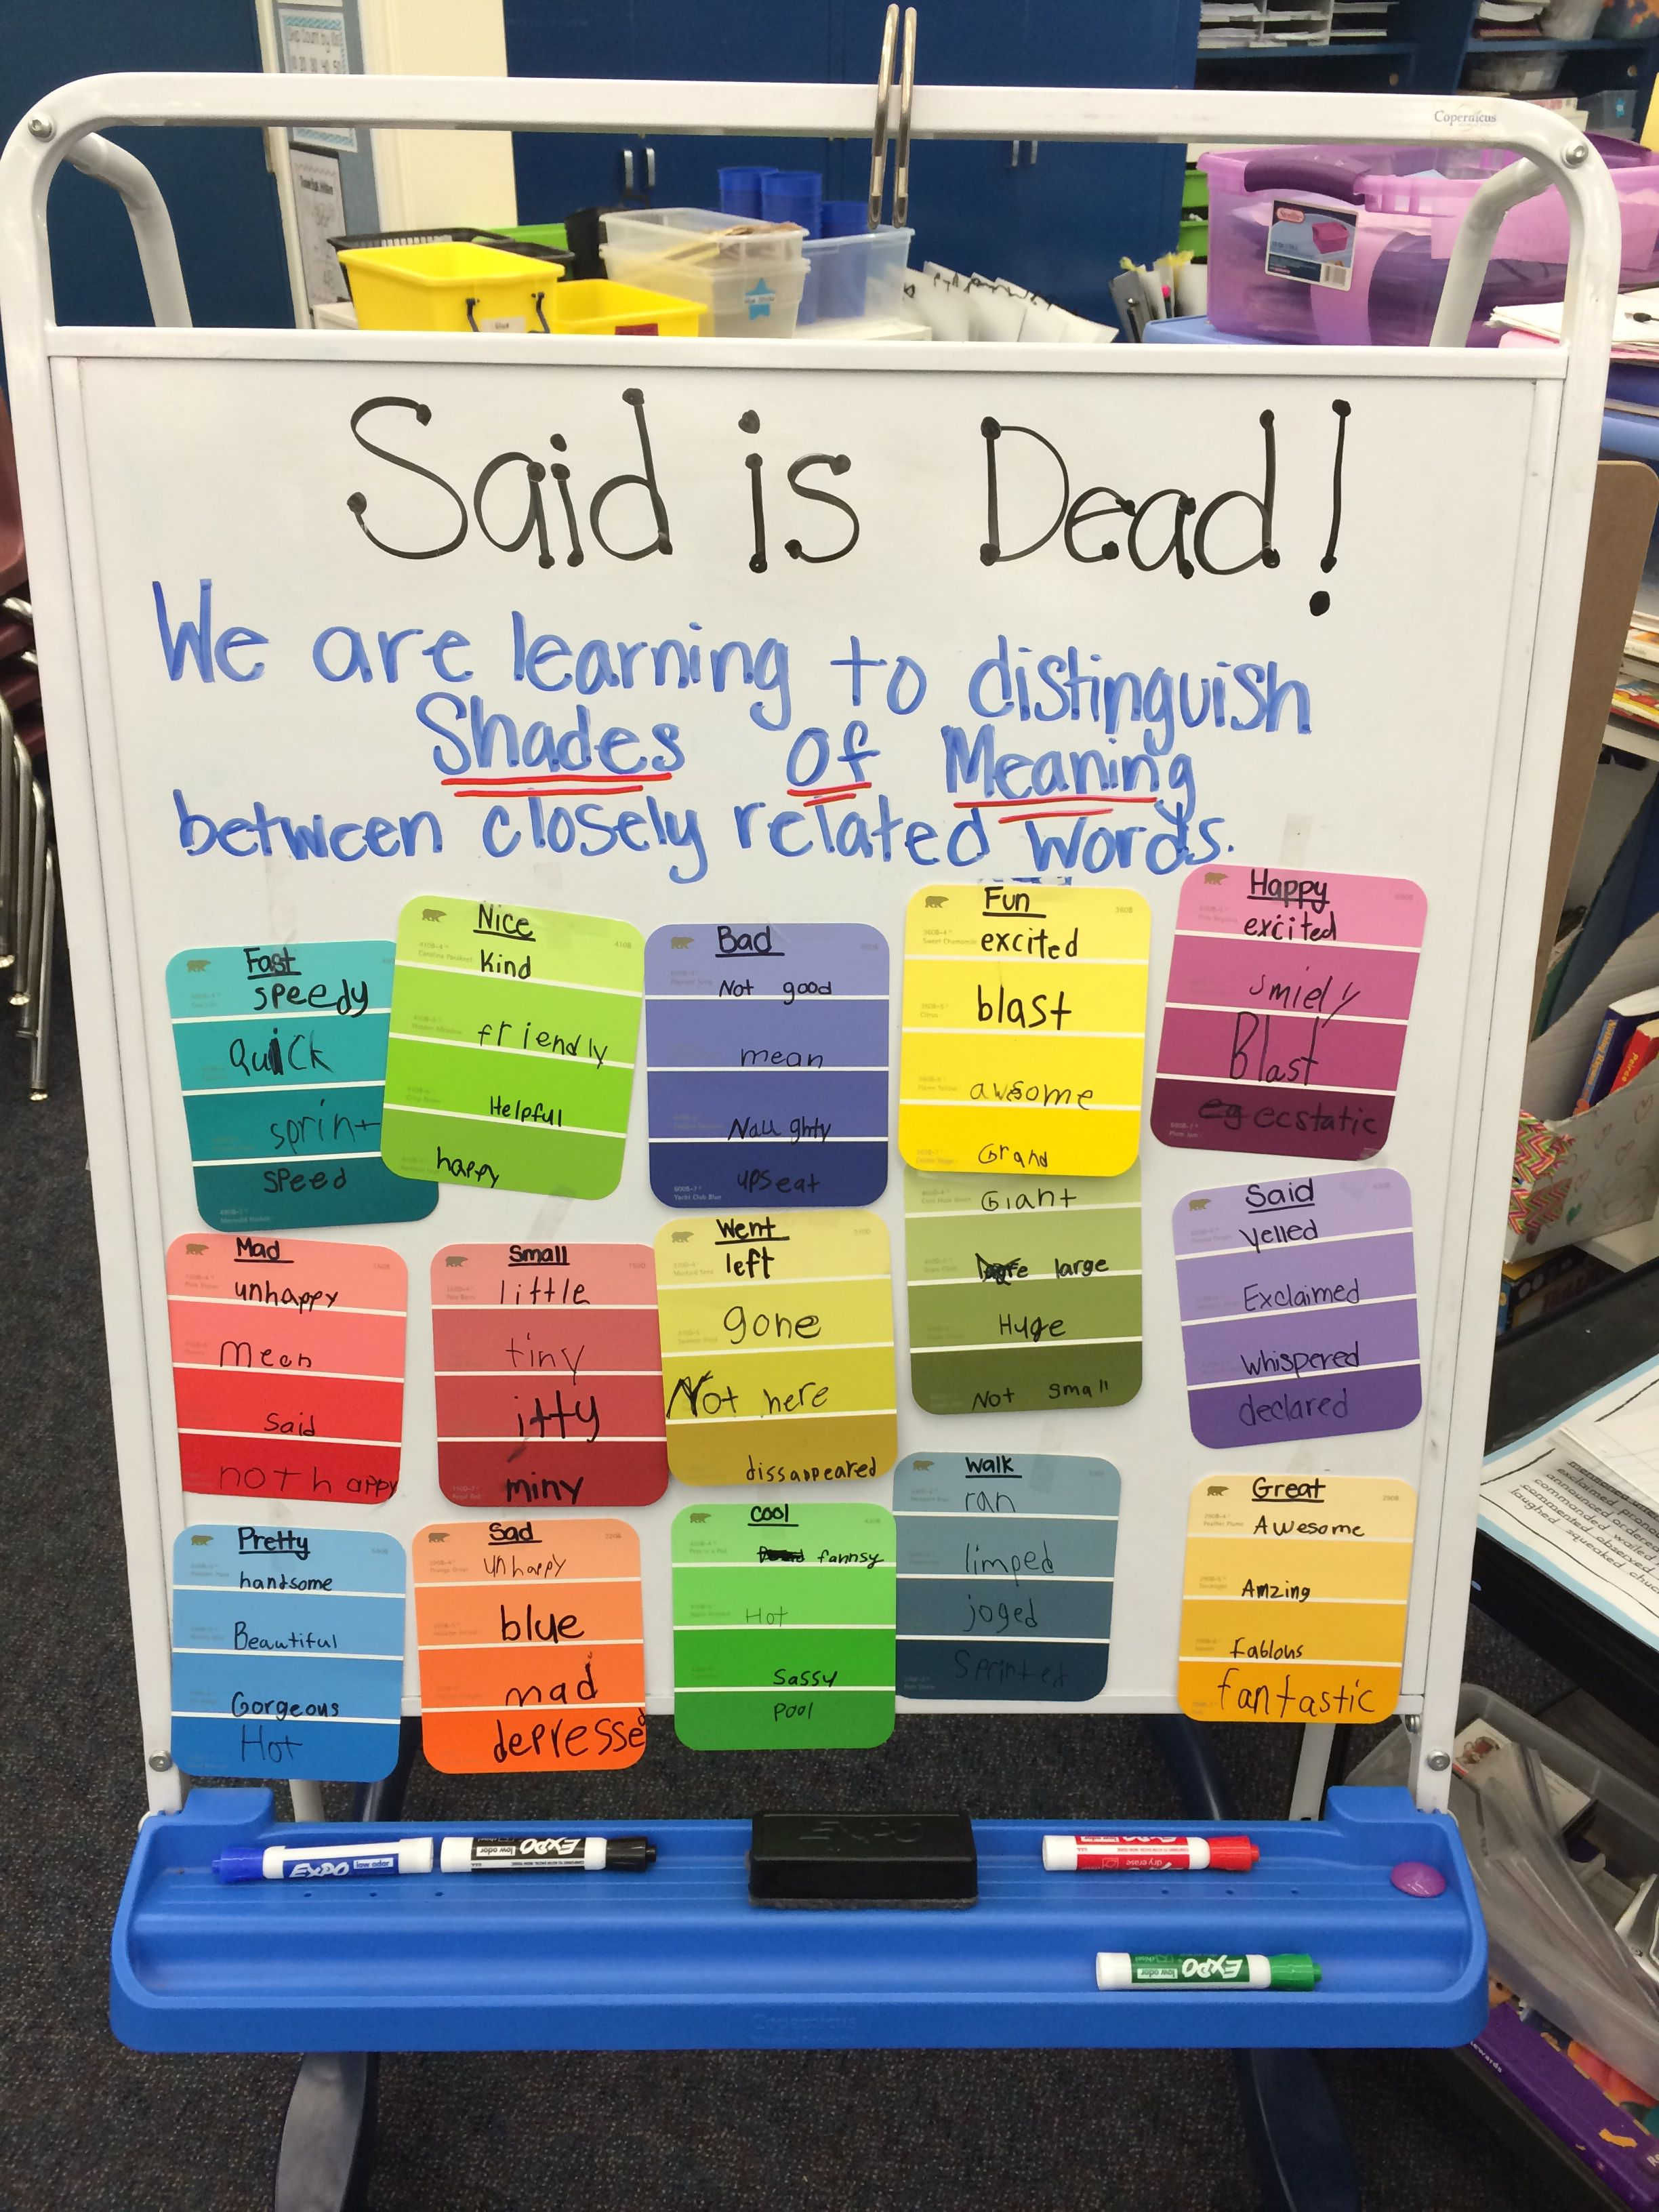 Said Is Dead Shades Of Meaning Activity